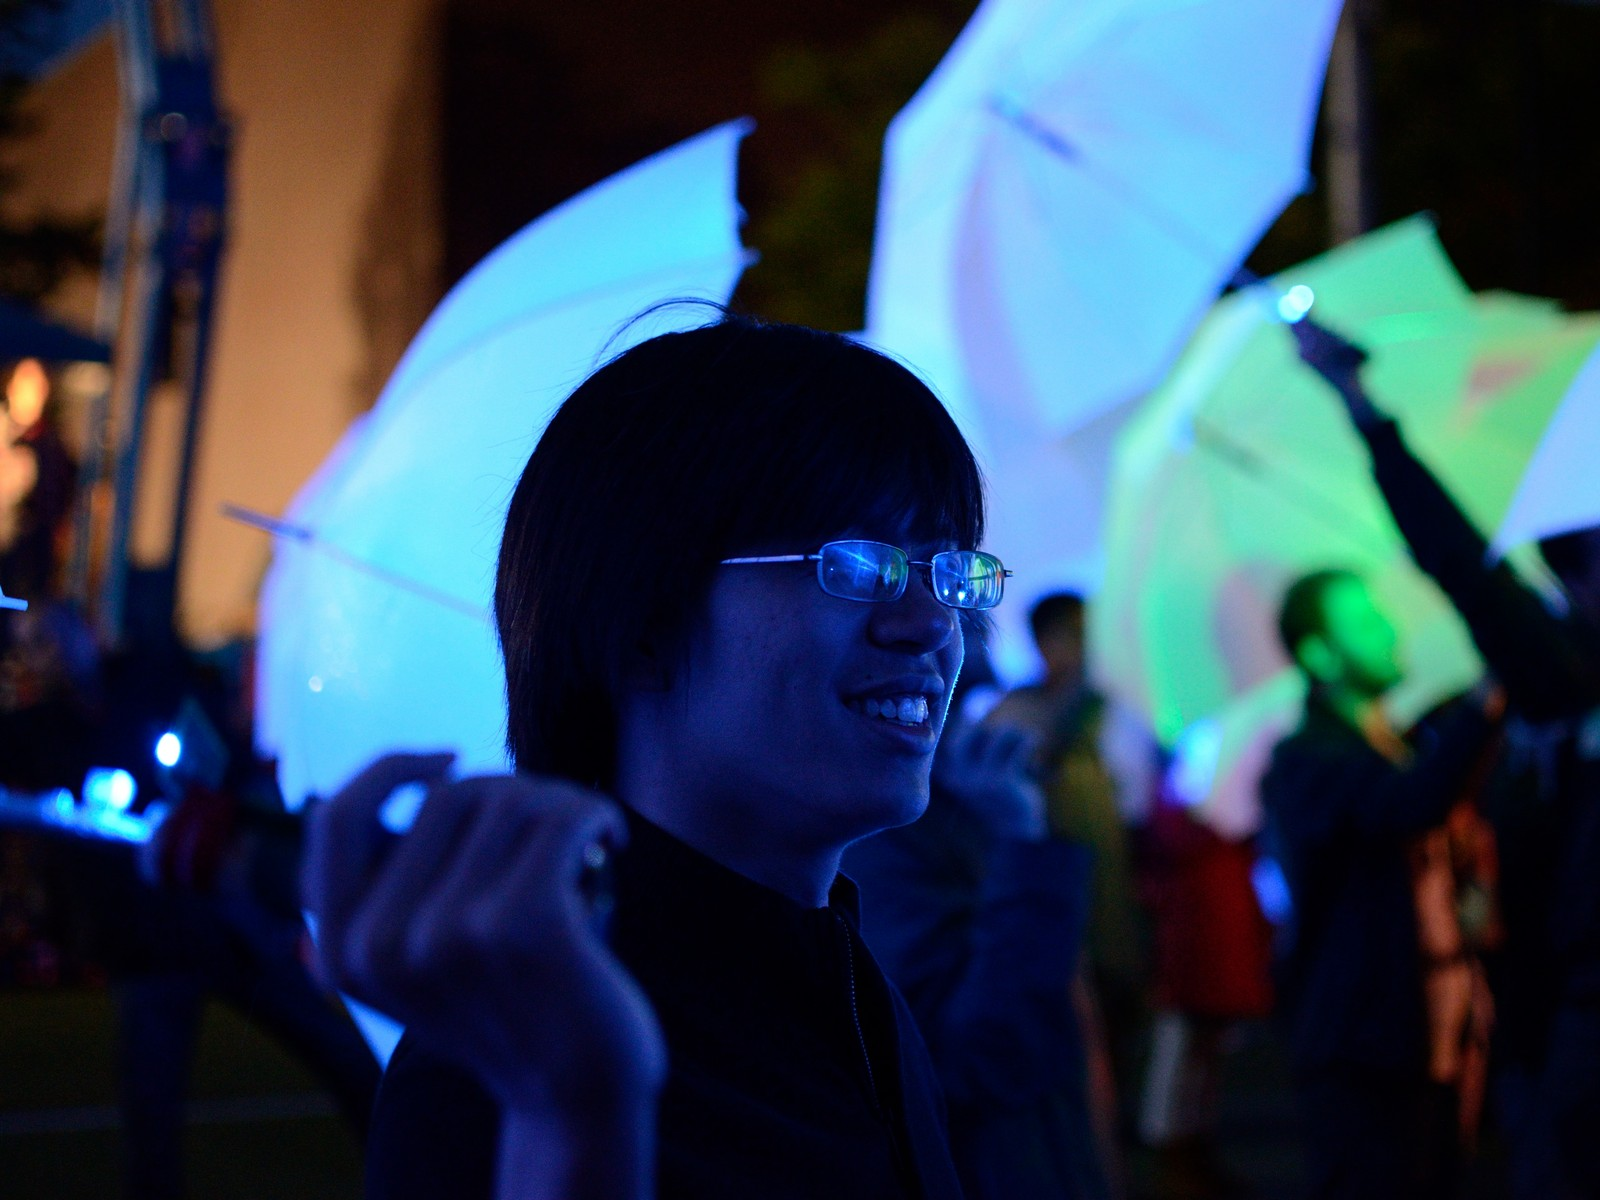 norman cao holds an umbrella in the crowd at umbrella project mit